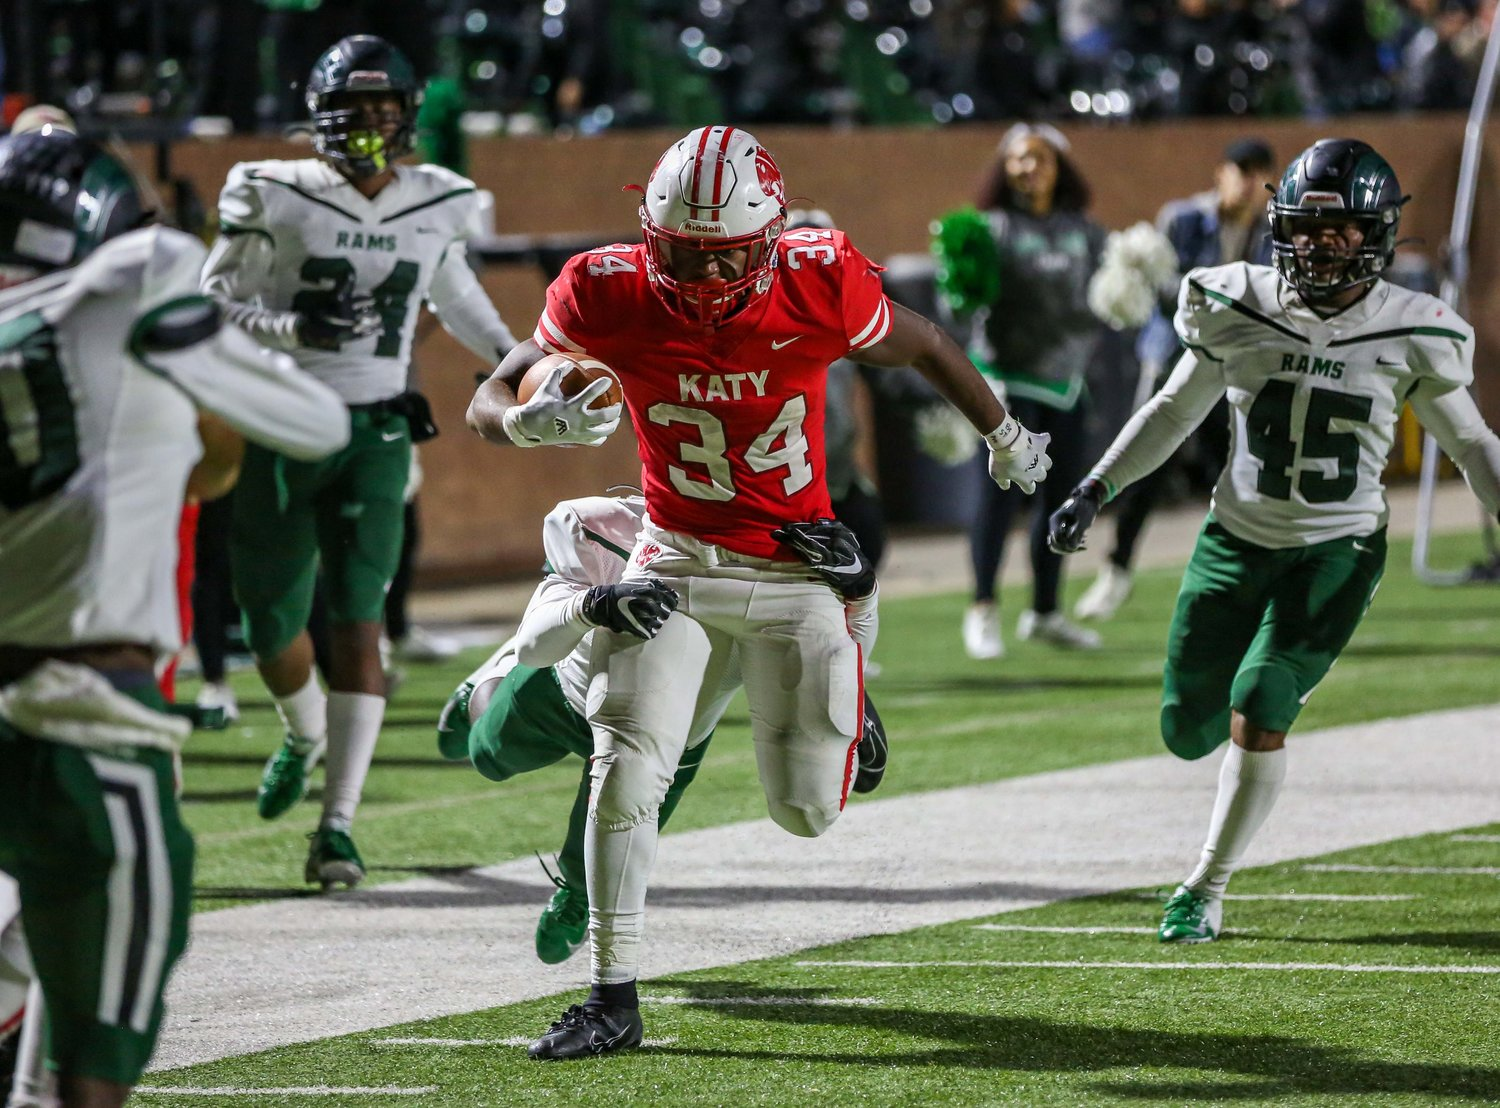 Katy, Tx. Nov. 1, 2019: Katy's Ronald Hoff (34) carries the ball scoring a TD during a conference game between Katy Tigers and Mayde Creek Rams at Rhodes Stadium. (Photo by Mark Goodman / Katy Times)